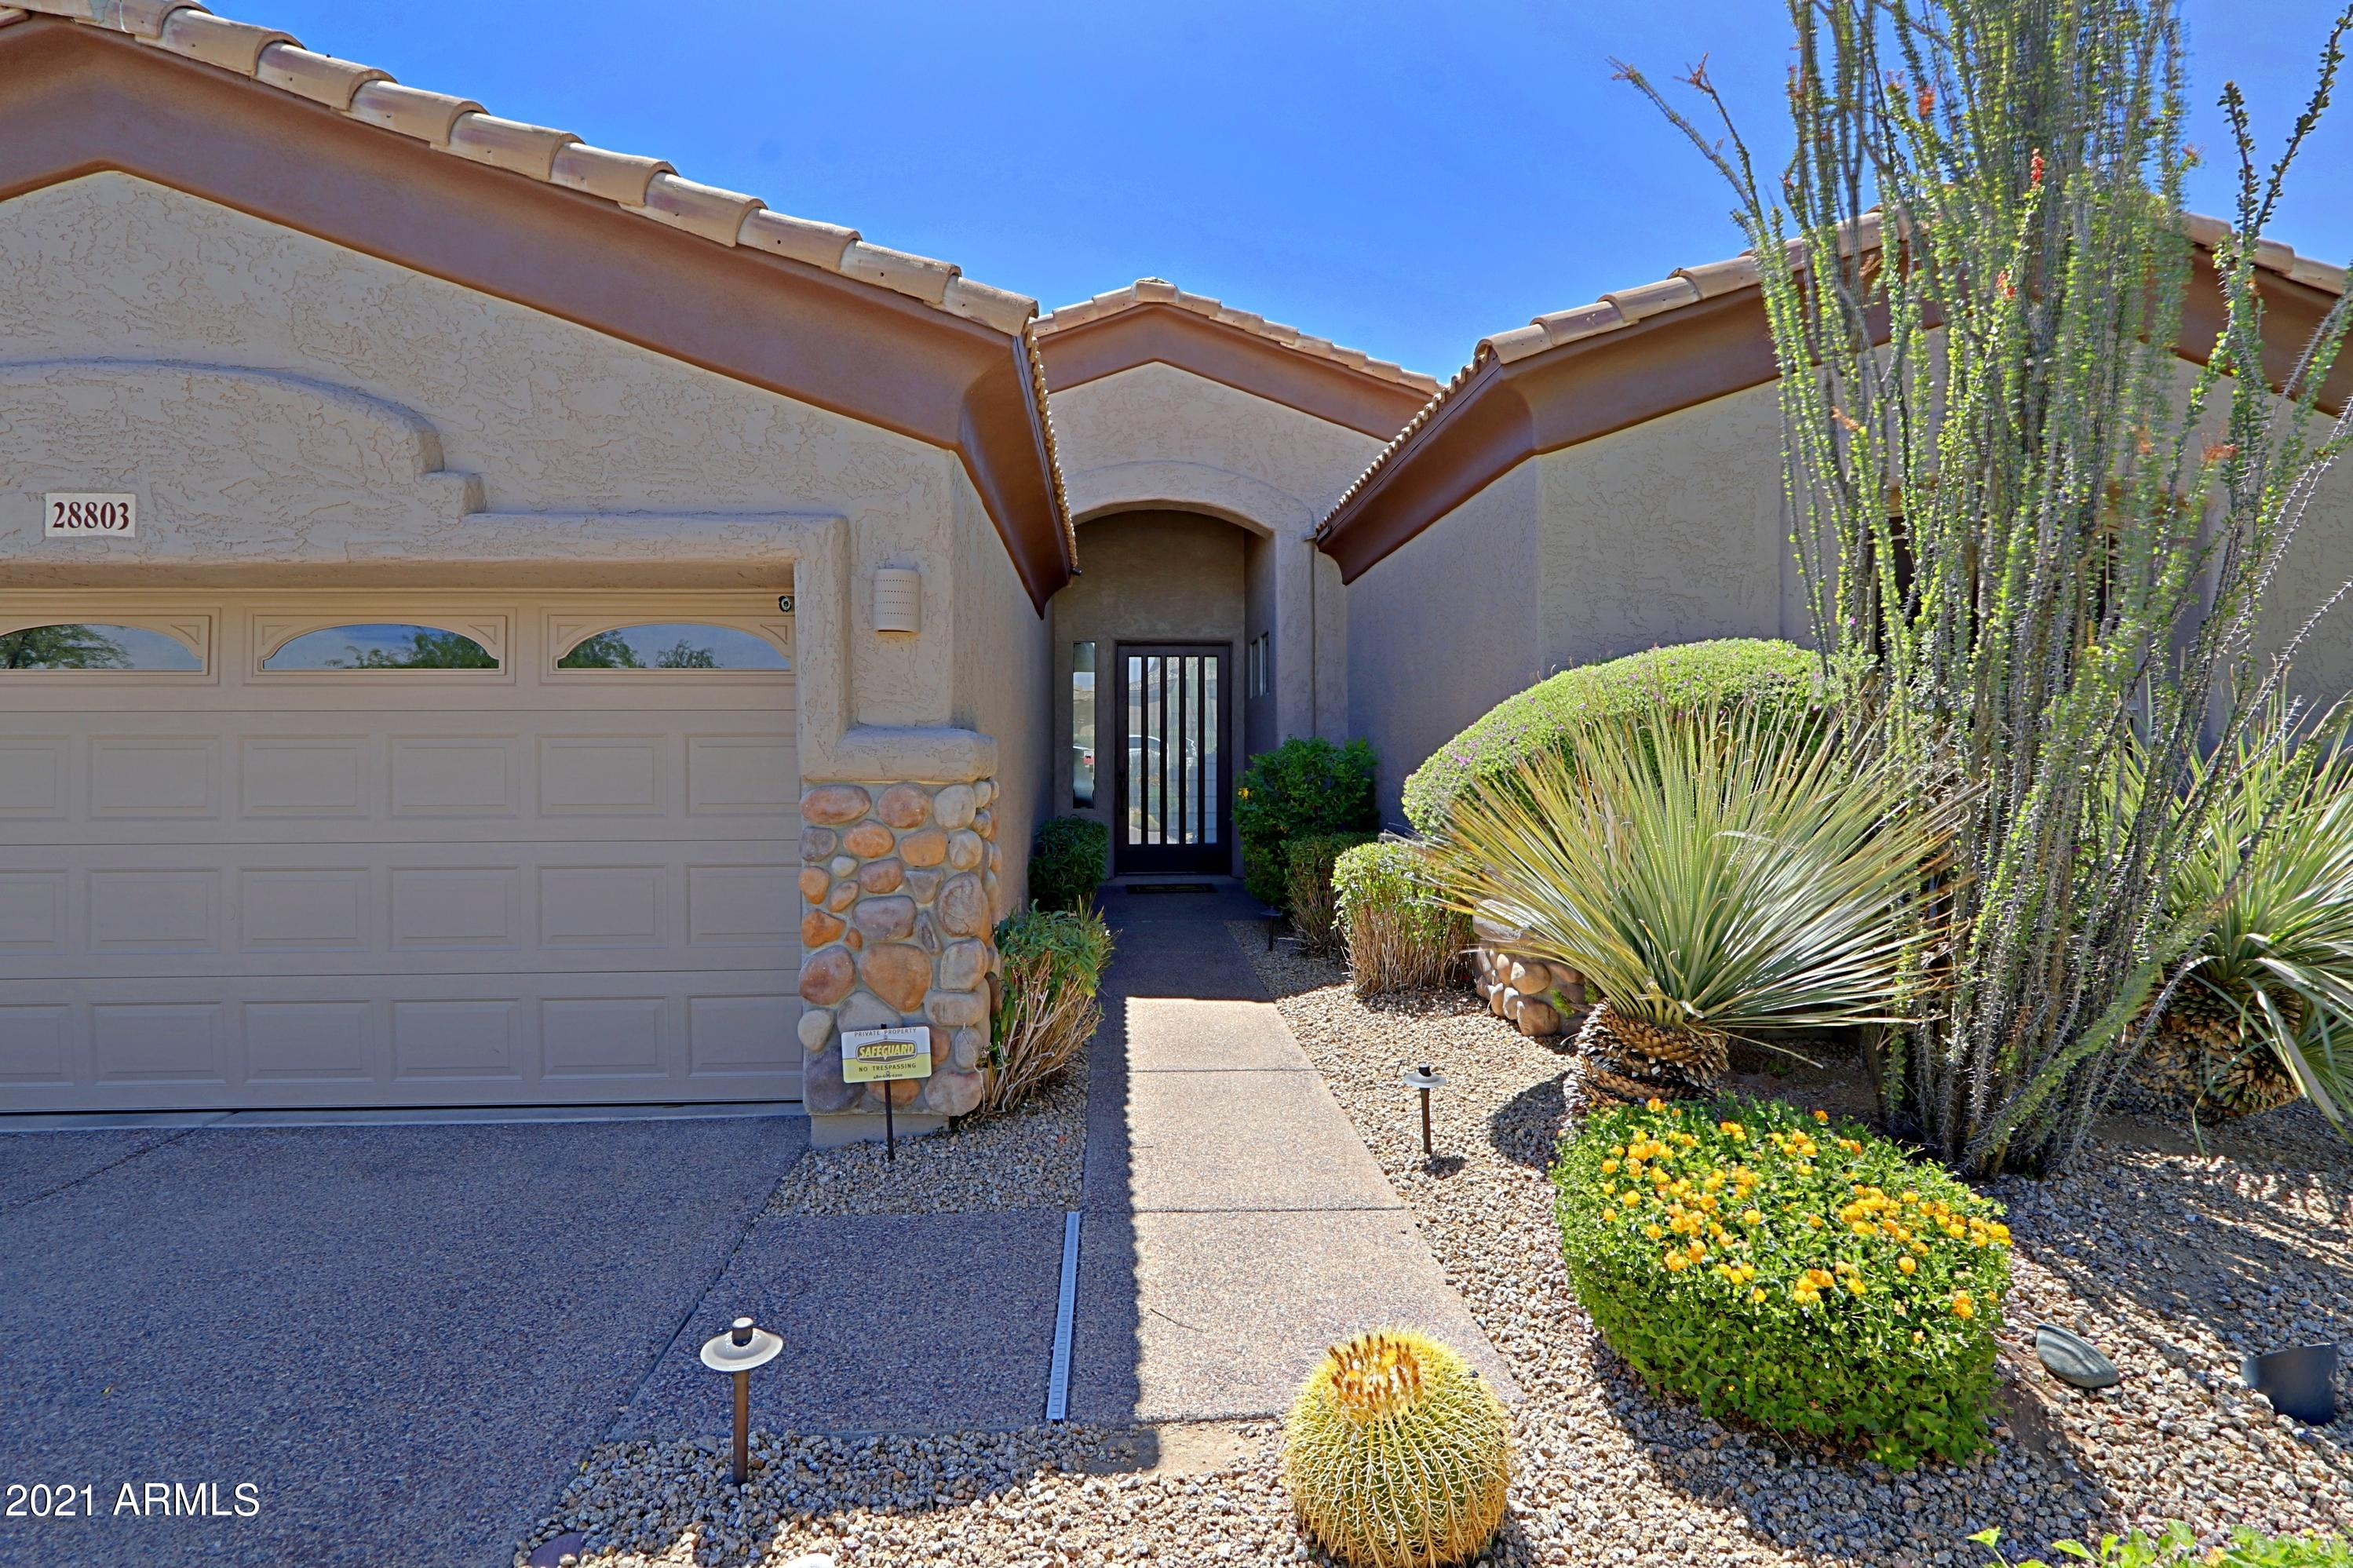 28803 N 112TH Place, Scottsdale, AZ 85262, 2 Bedrooms Bedrooms, ,Residential Lease,For Rent,28803 N 112TH Place,6245149